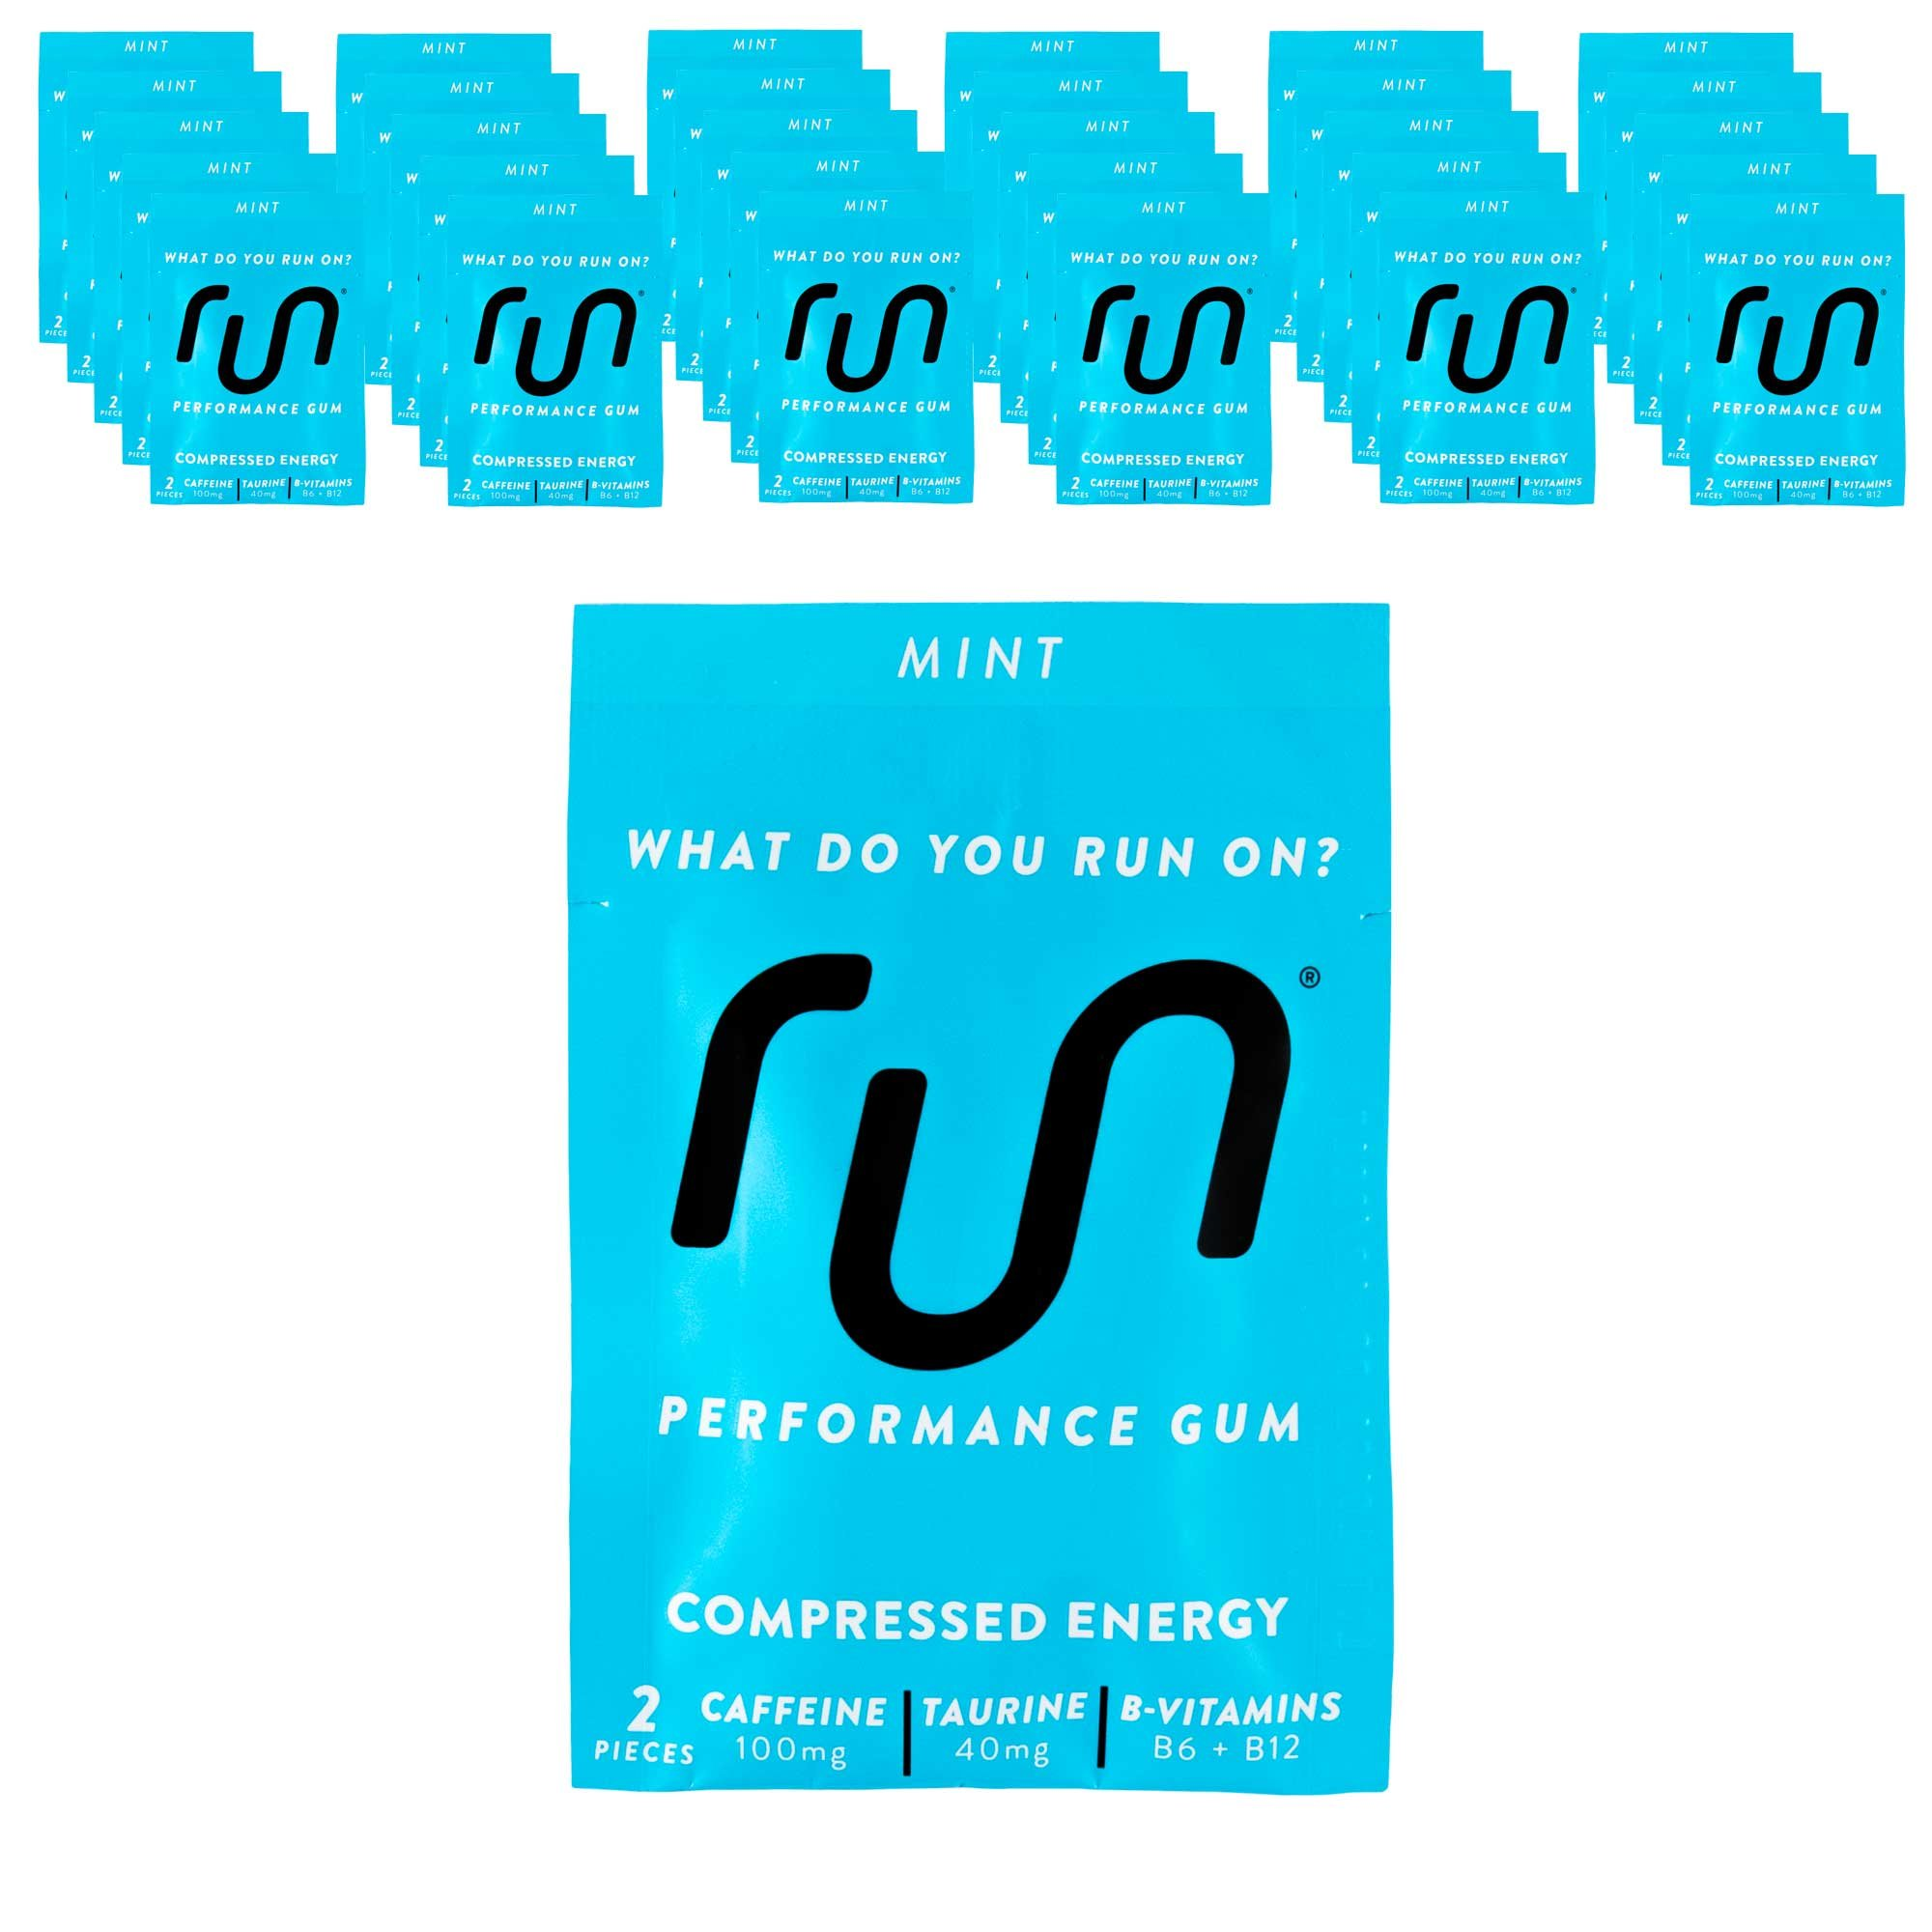 RUN GUM Mint Energy Gum 50mg Caffeine Taurine & B-Vitamins (30pk), 2 Pieces = 1 coffee/Energy drink, Quick Energy Boost